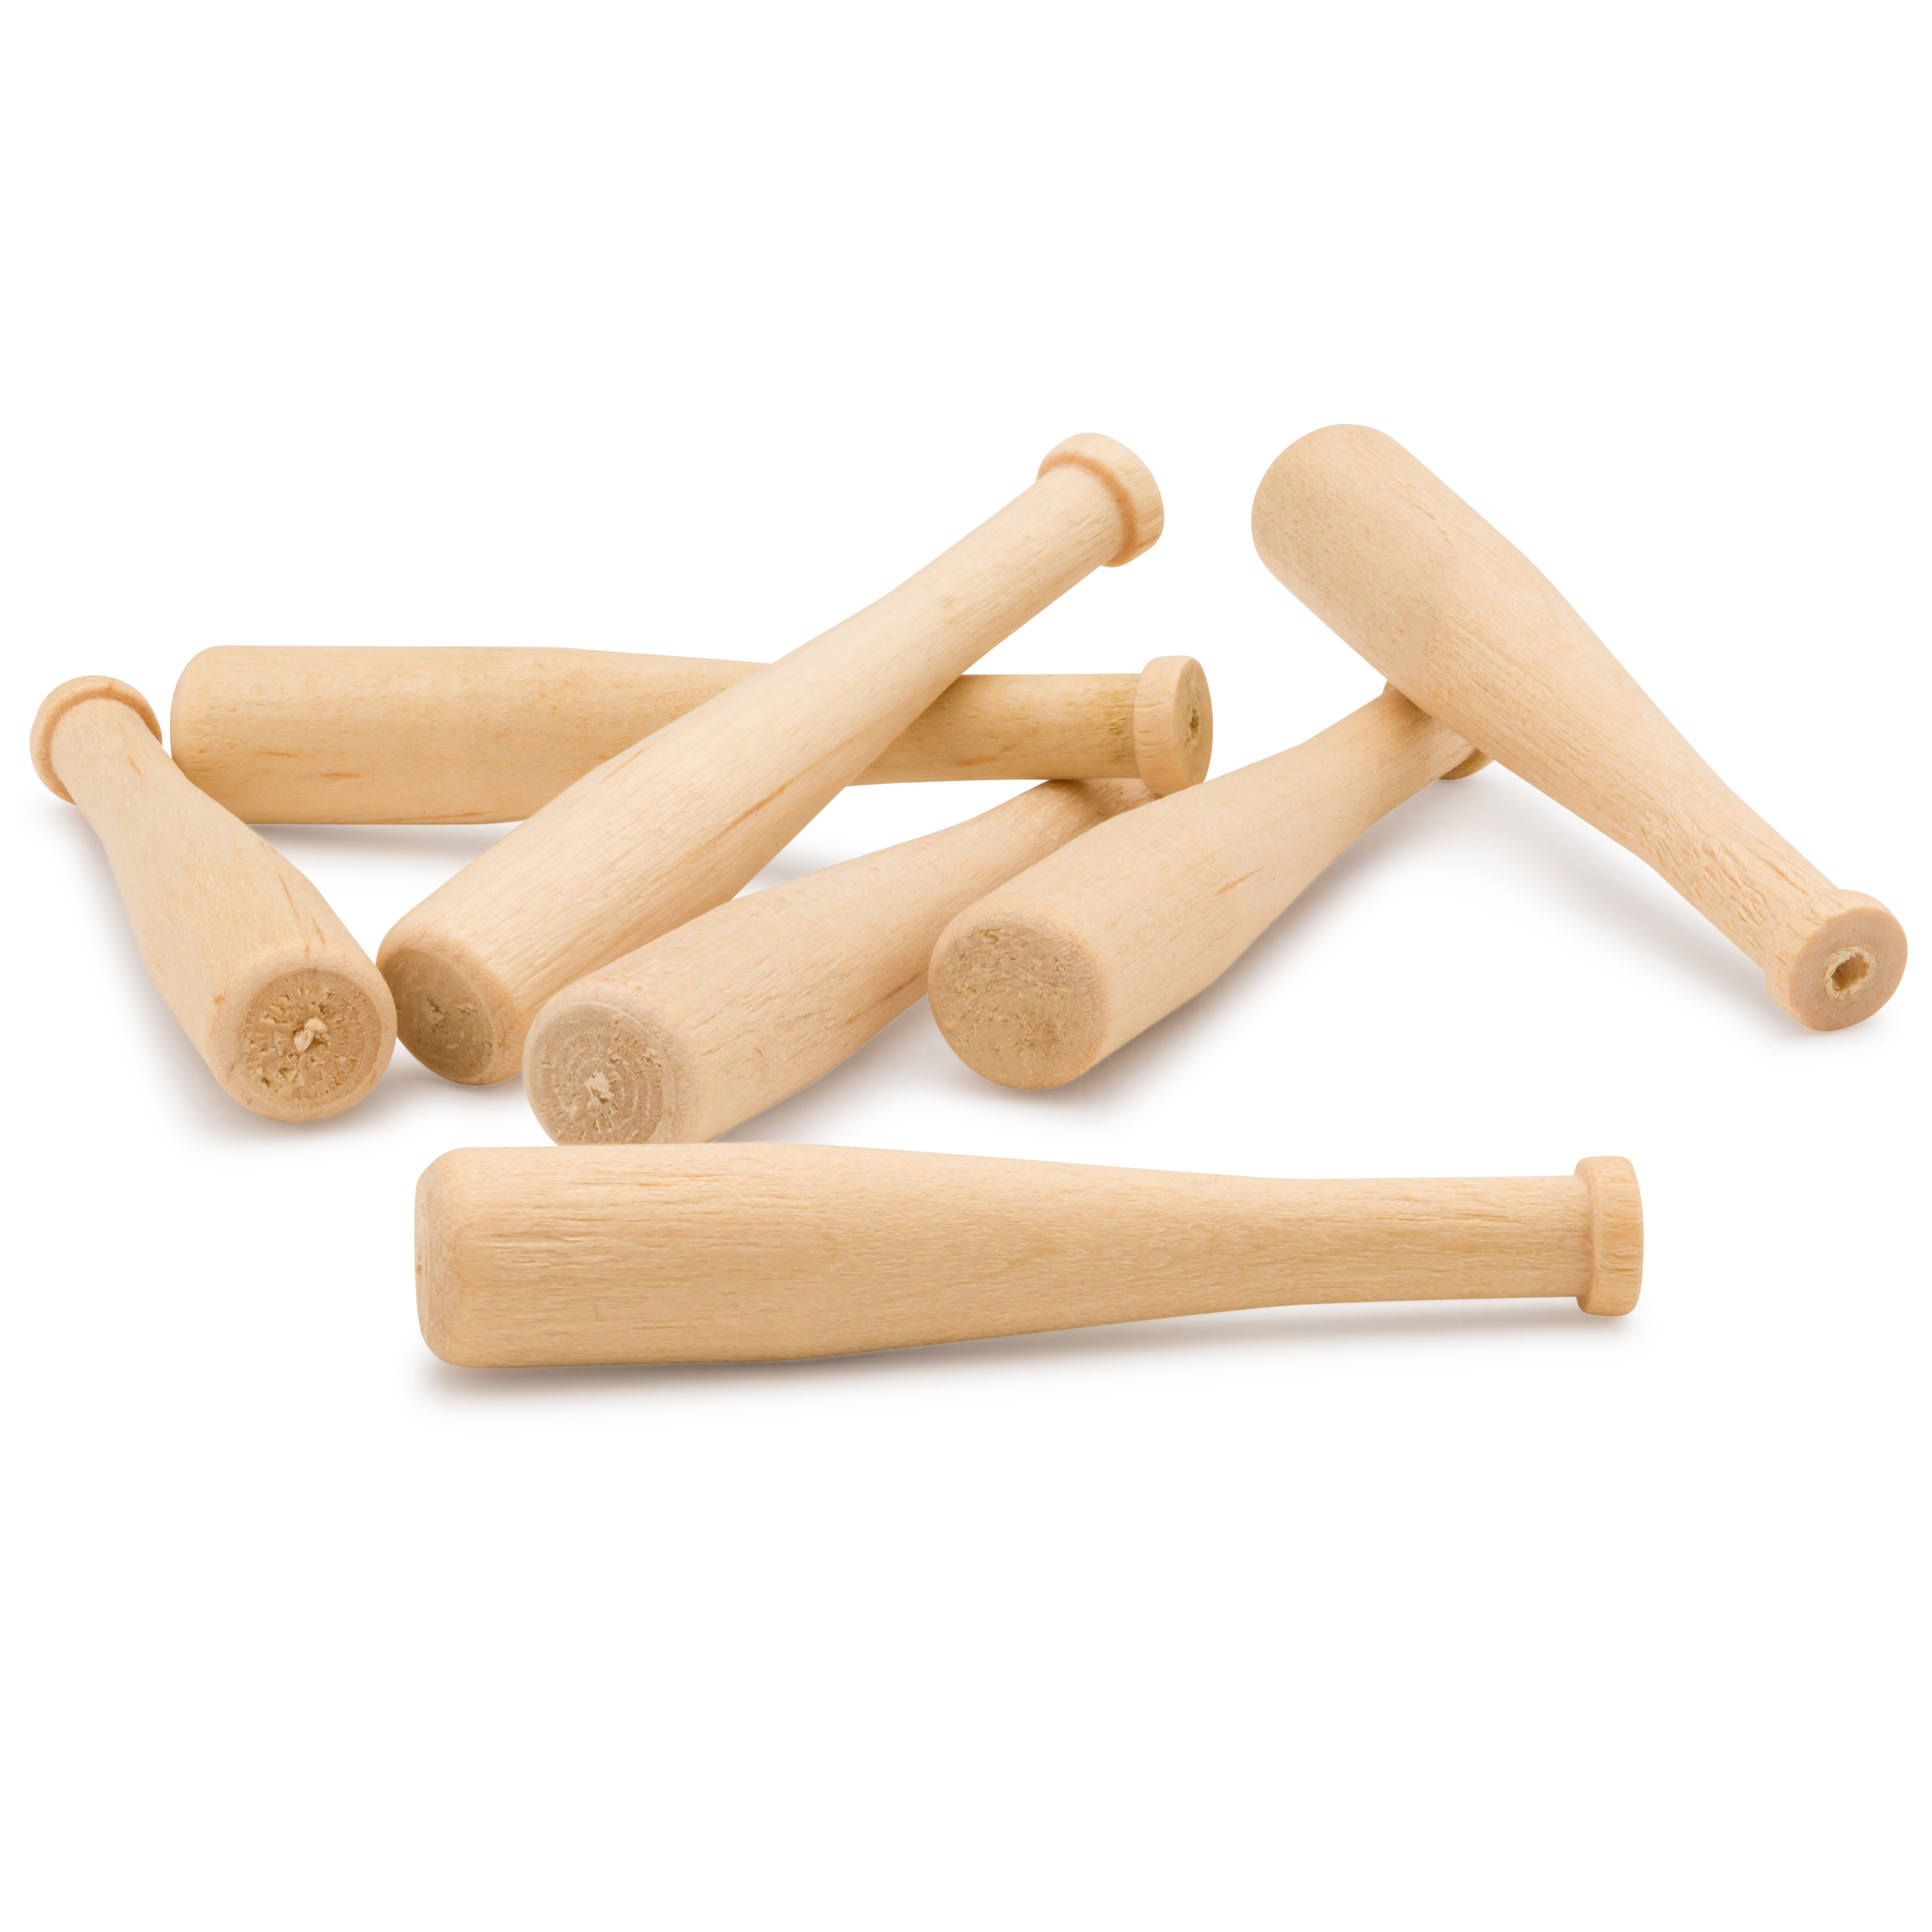 Wooden Toy & Game Parts